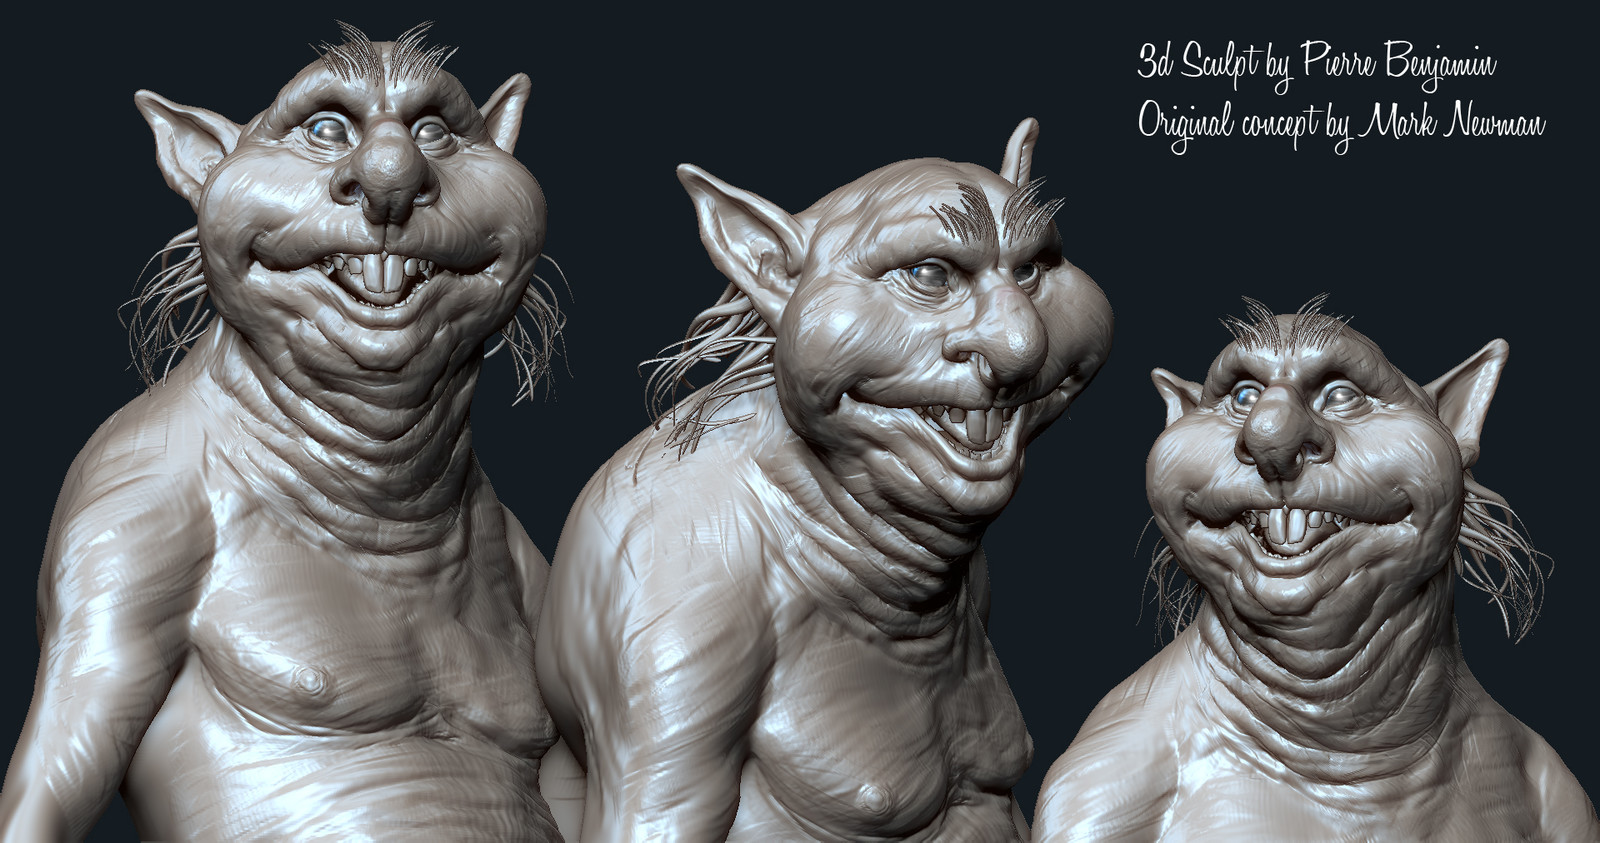 Thimbletack - 2 hours speed sculpt Study based upon an original Concept By Mark Newman